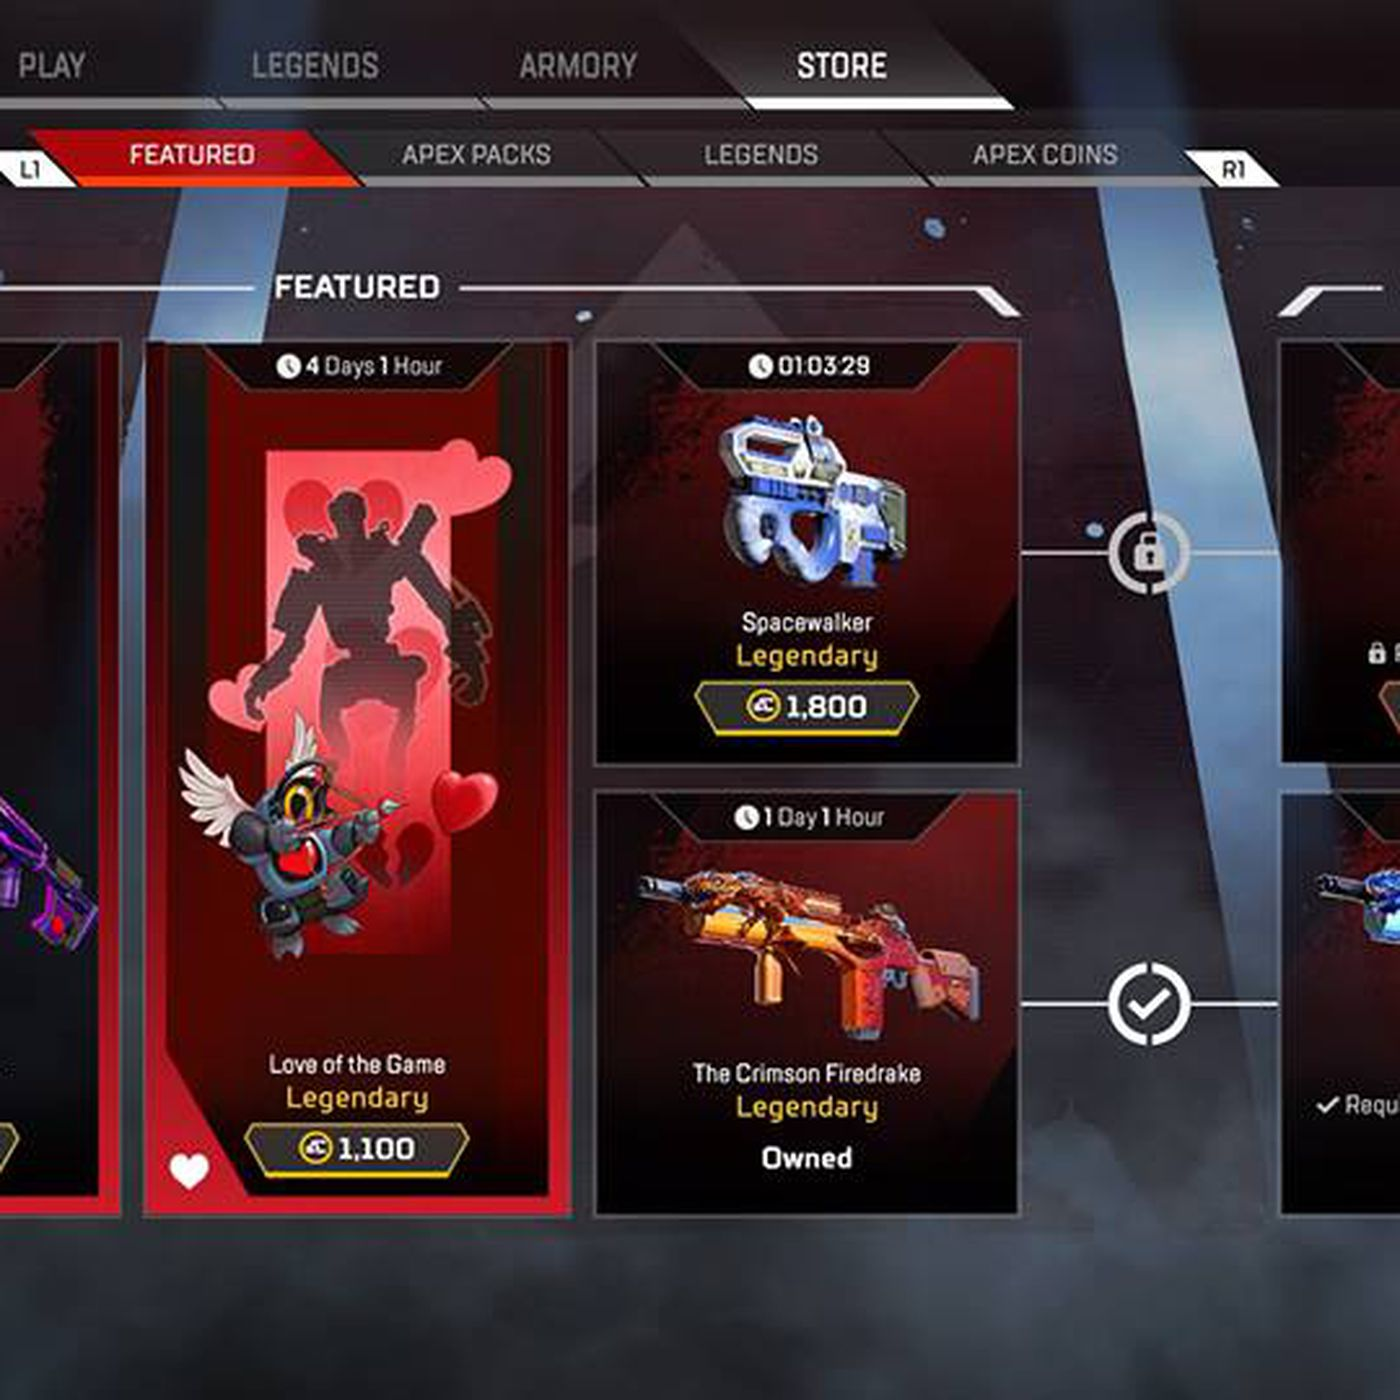 f23942030c Apex Legends players think its in-game items are way too expensive - The  Verge